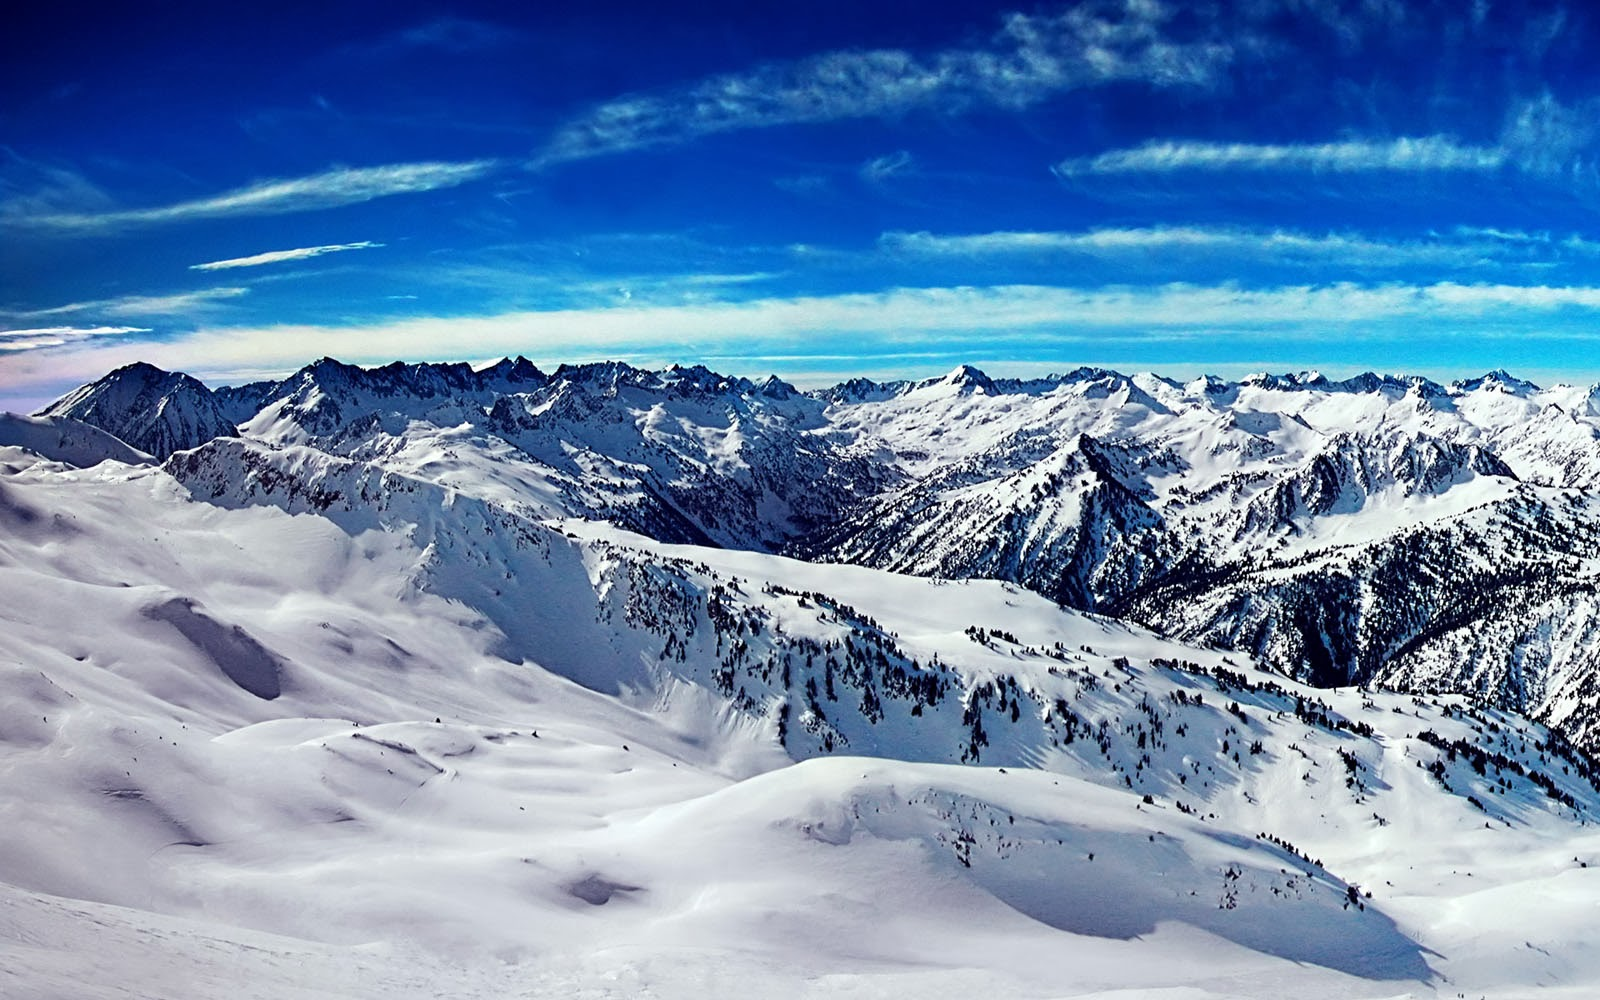 Download Free 3d Wallpapers For Windows 8 Wallpapers Icy Mountains Wallpapers